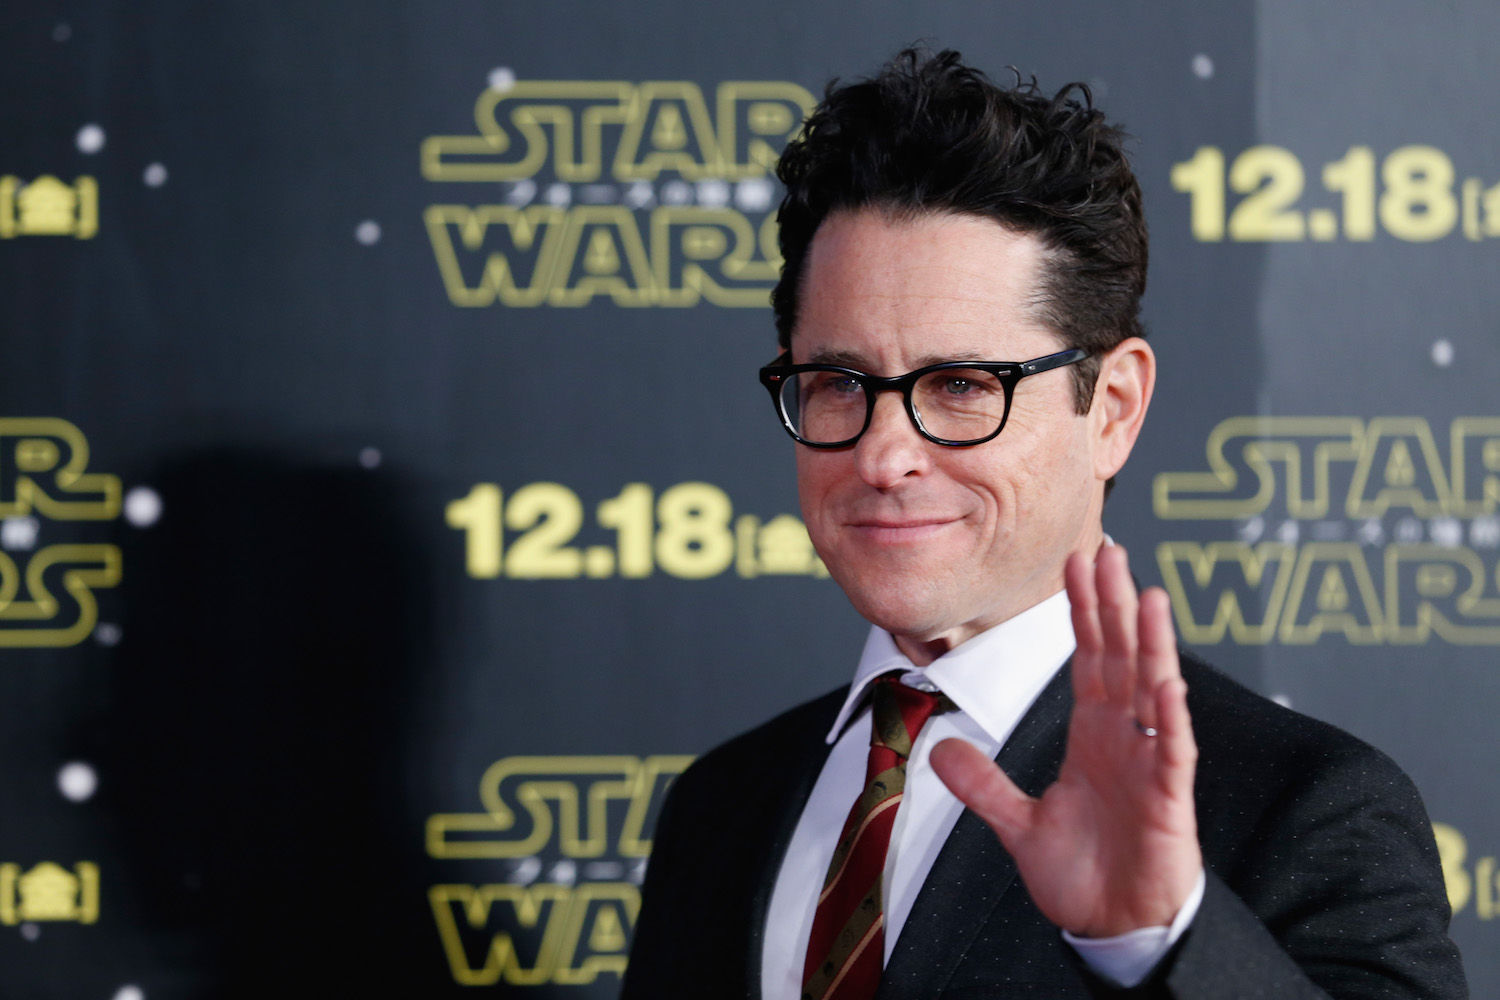 TOKYO, JAPAN - DECEMBER 10: Director J.J. Abrams attends the 'Star Wars: The Force Awakens' fan event at the Roppongi Hills on December 10, 2015 in Tokyo, Japan. (Photo by Christopher Jue/Getty Images for Walt Disney Studios)